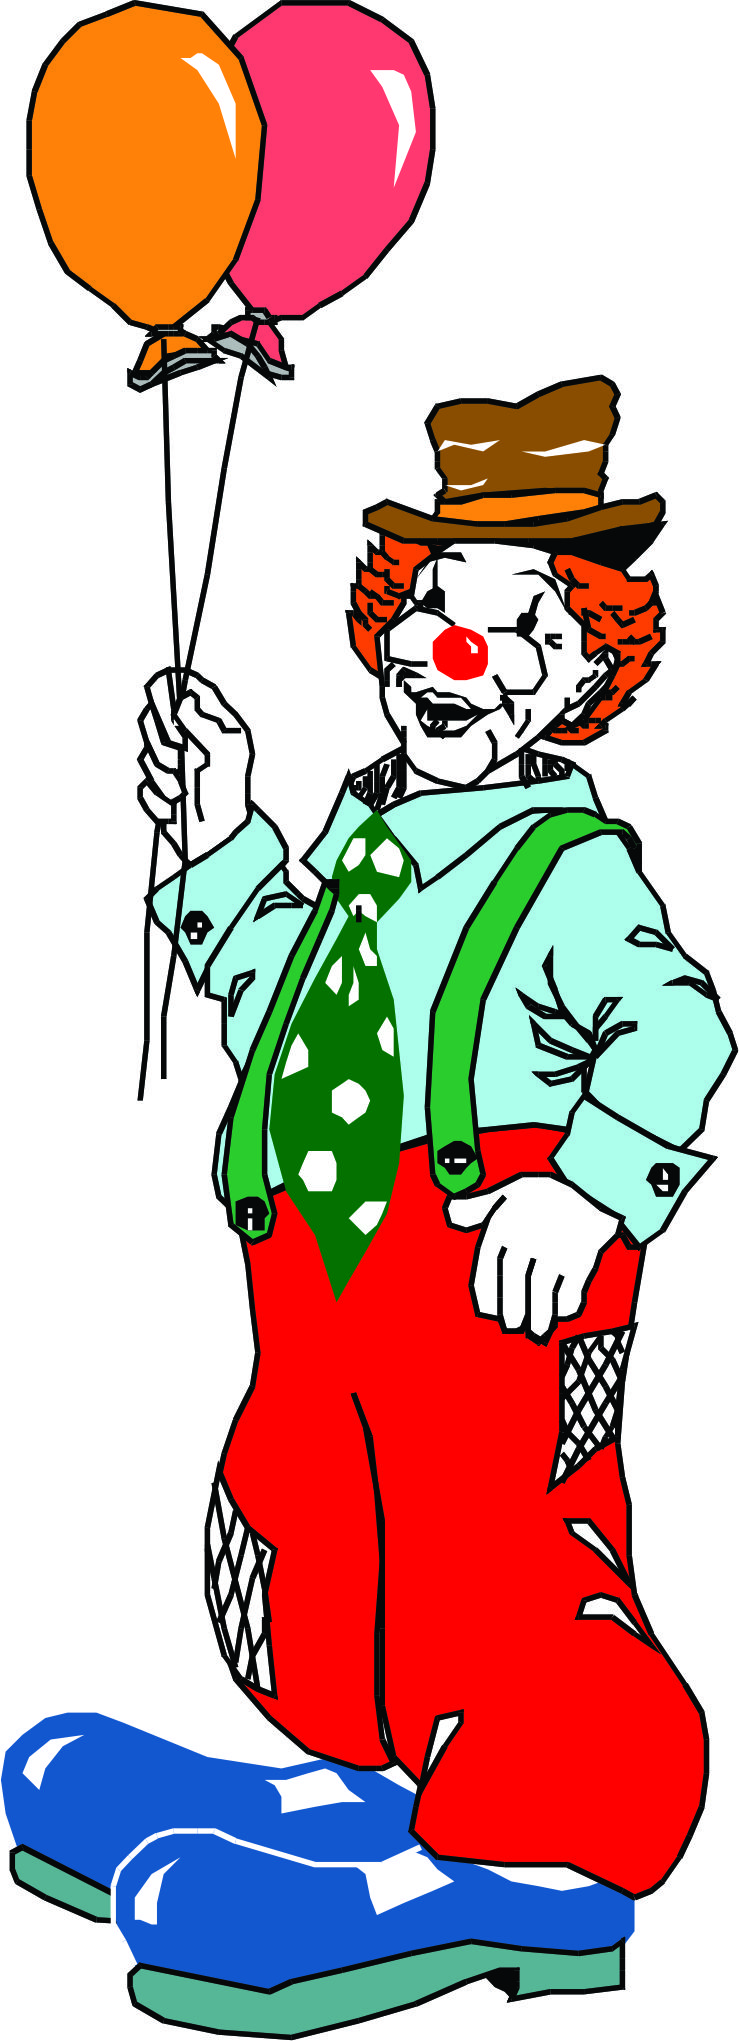 Cartoon Clowns Clipart - Clipart Kid